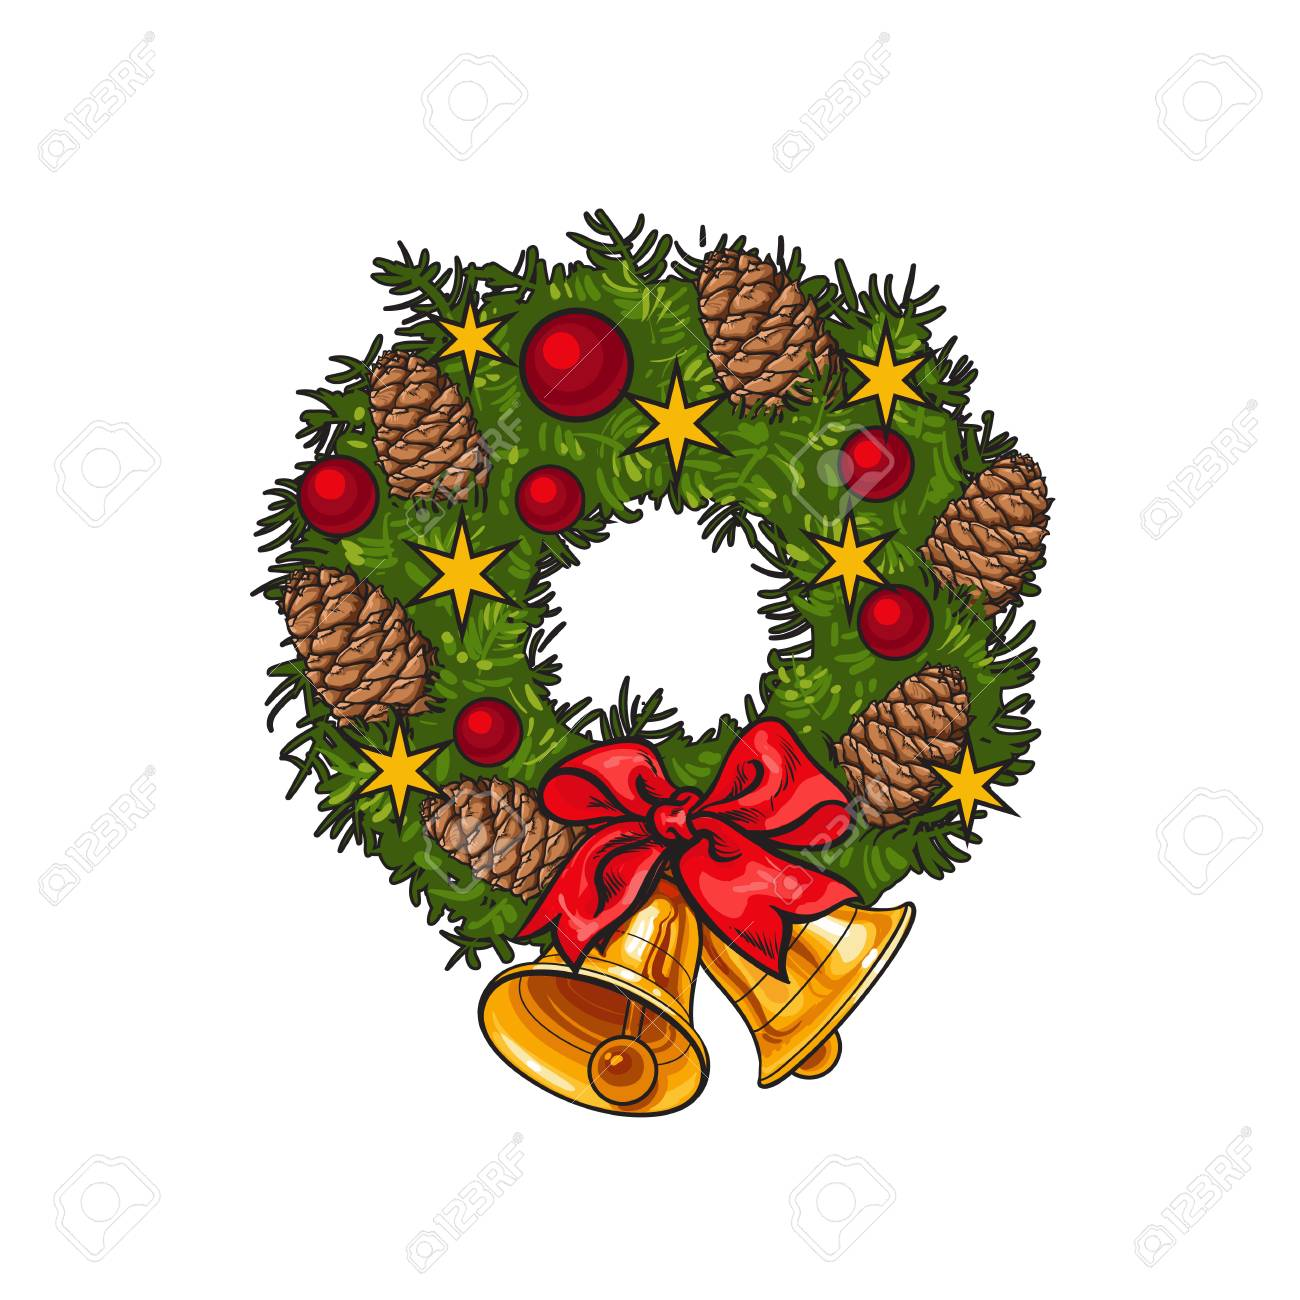 Green Christmas Wreath With Decorations Cartoon Vector Illustration Royalty Free Cliparts Vectors And Stock Illustration Image 63578909